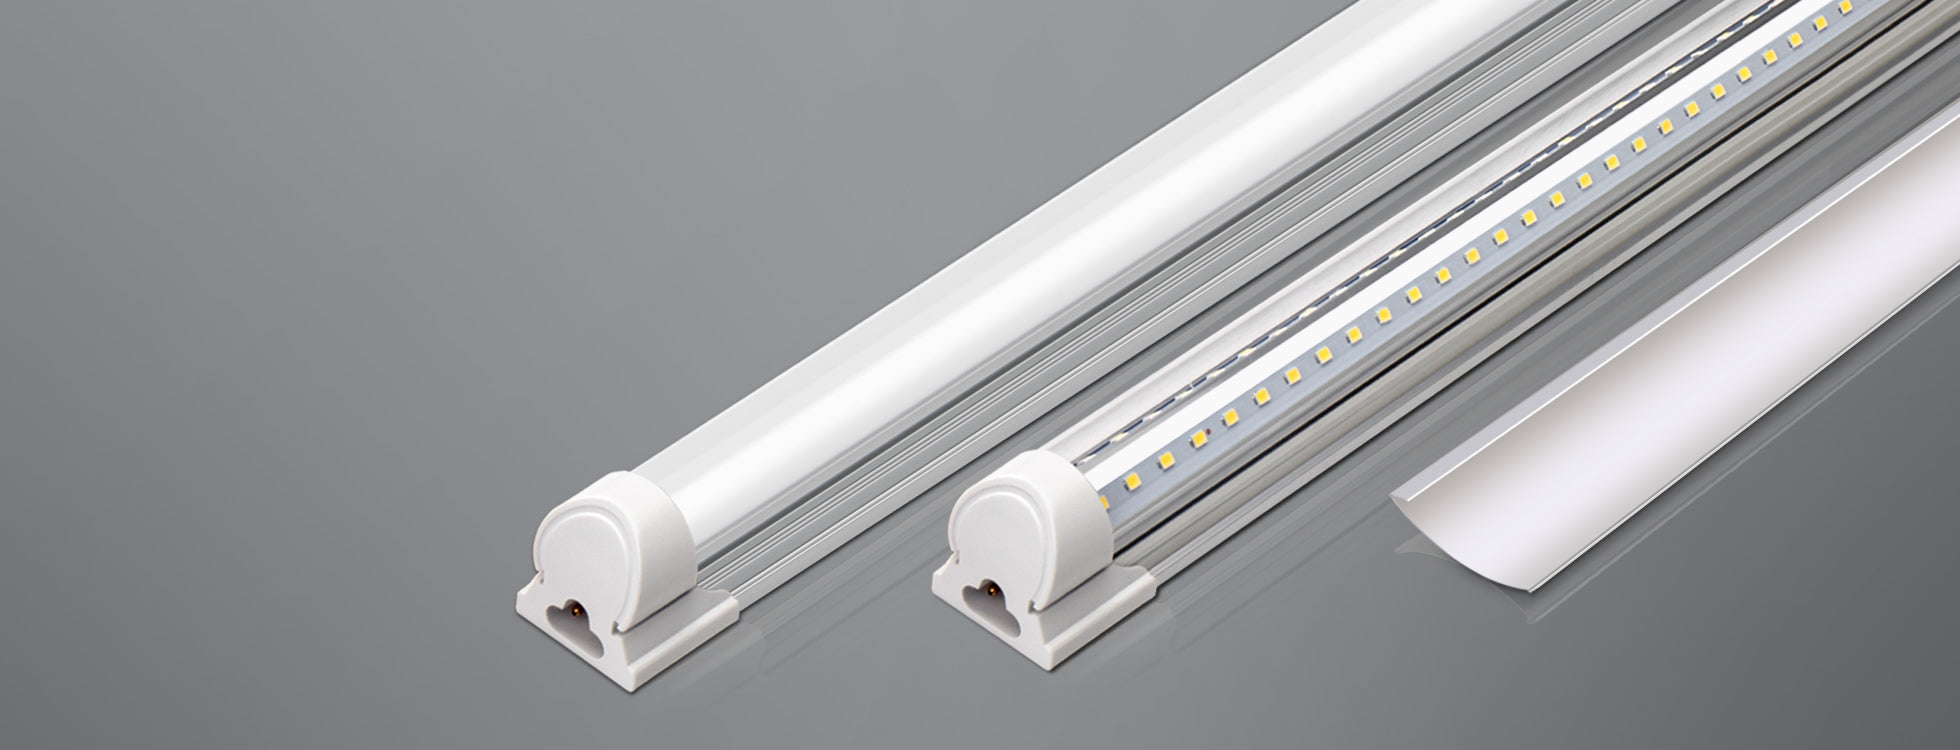 T8 LED Integrated Fixture